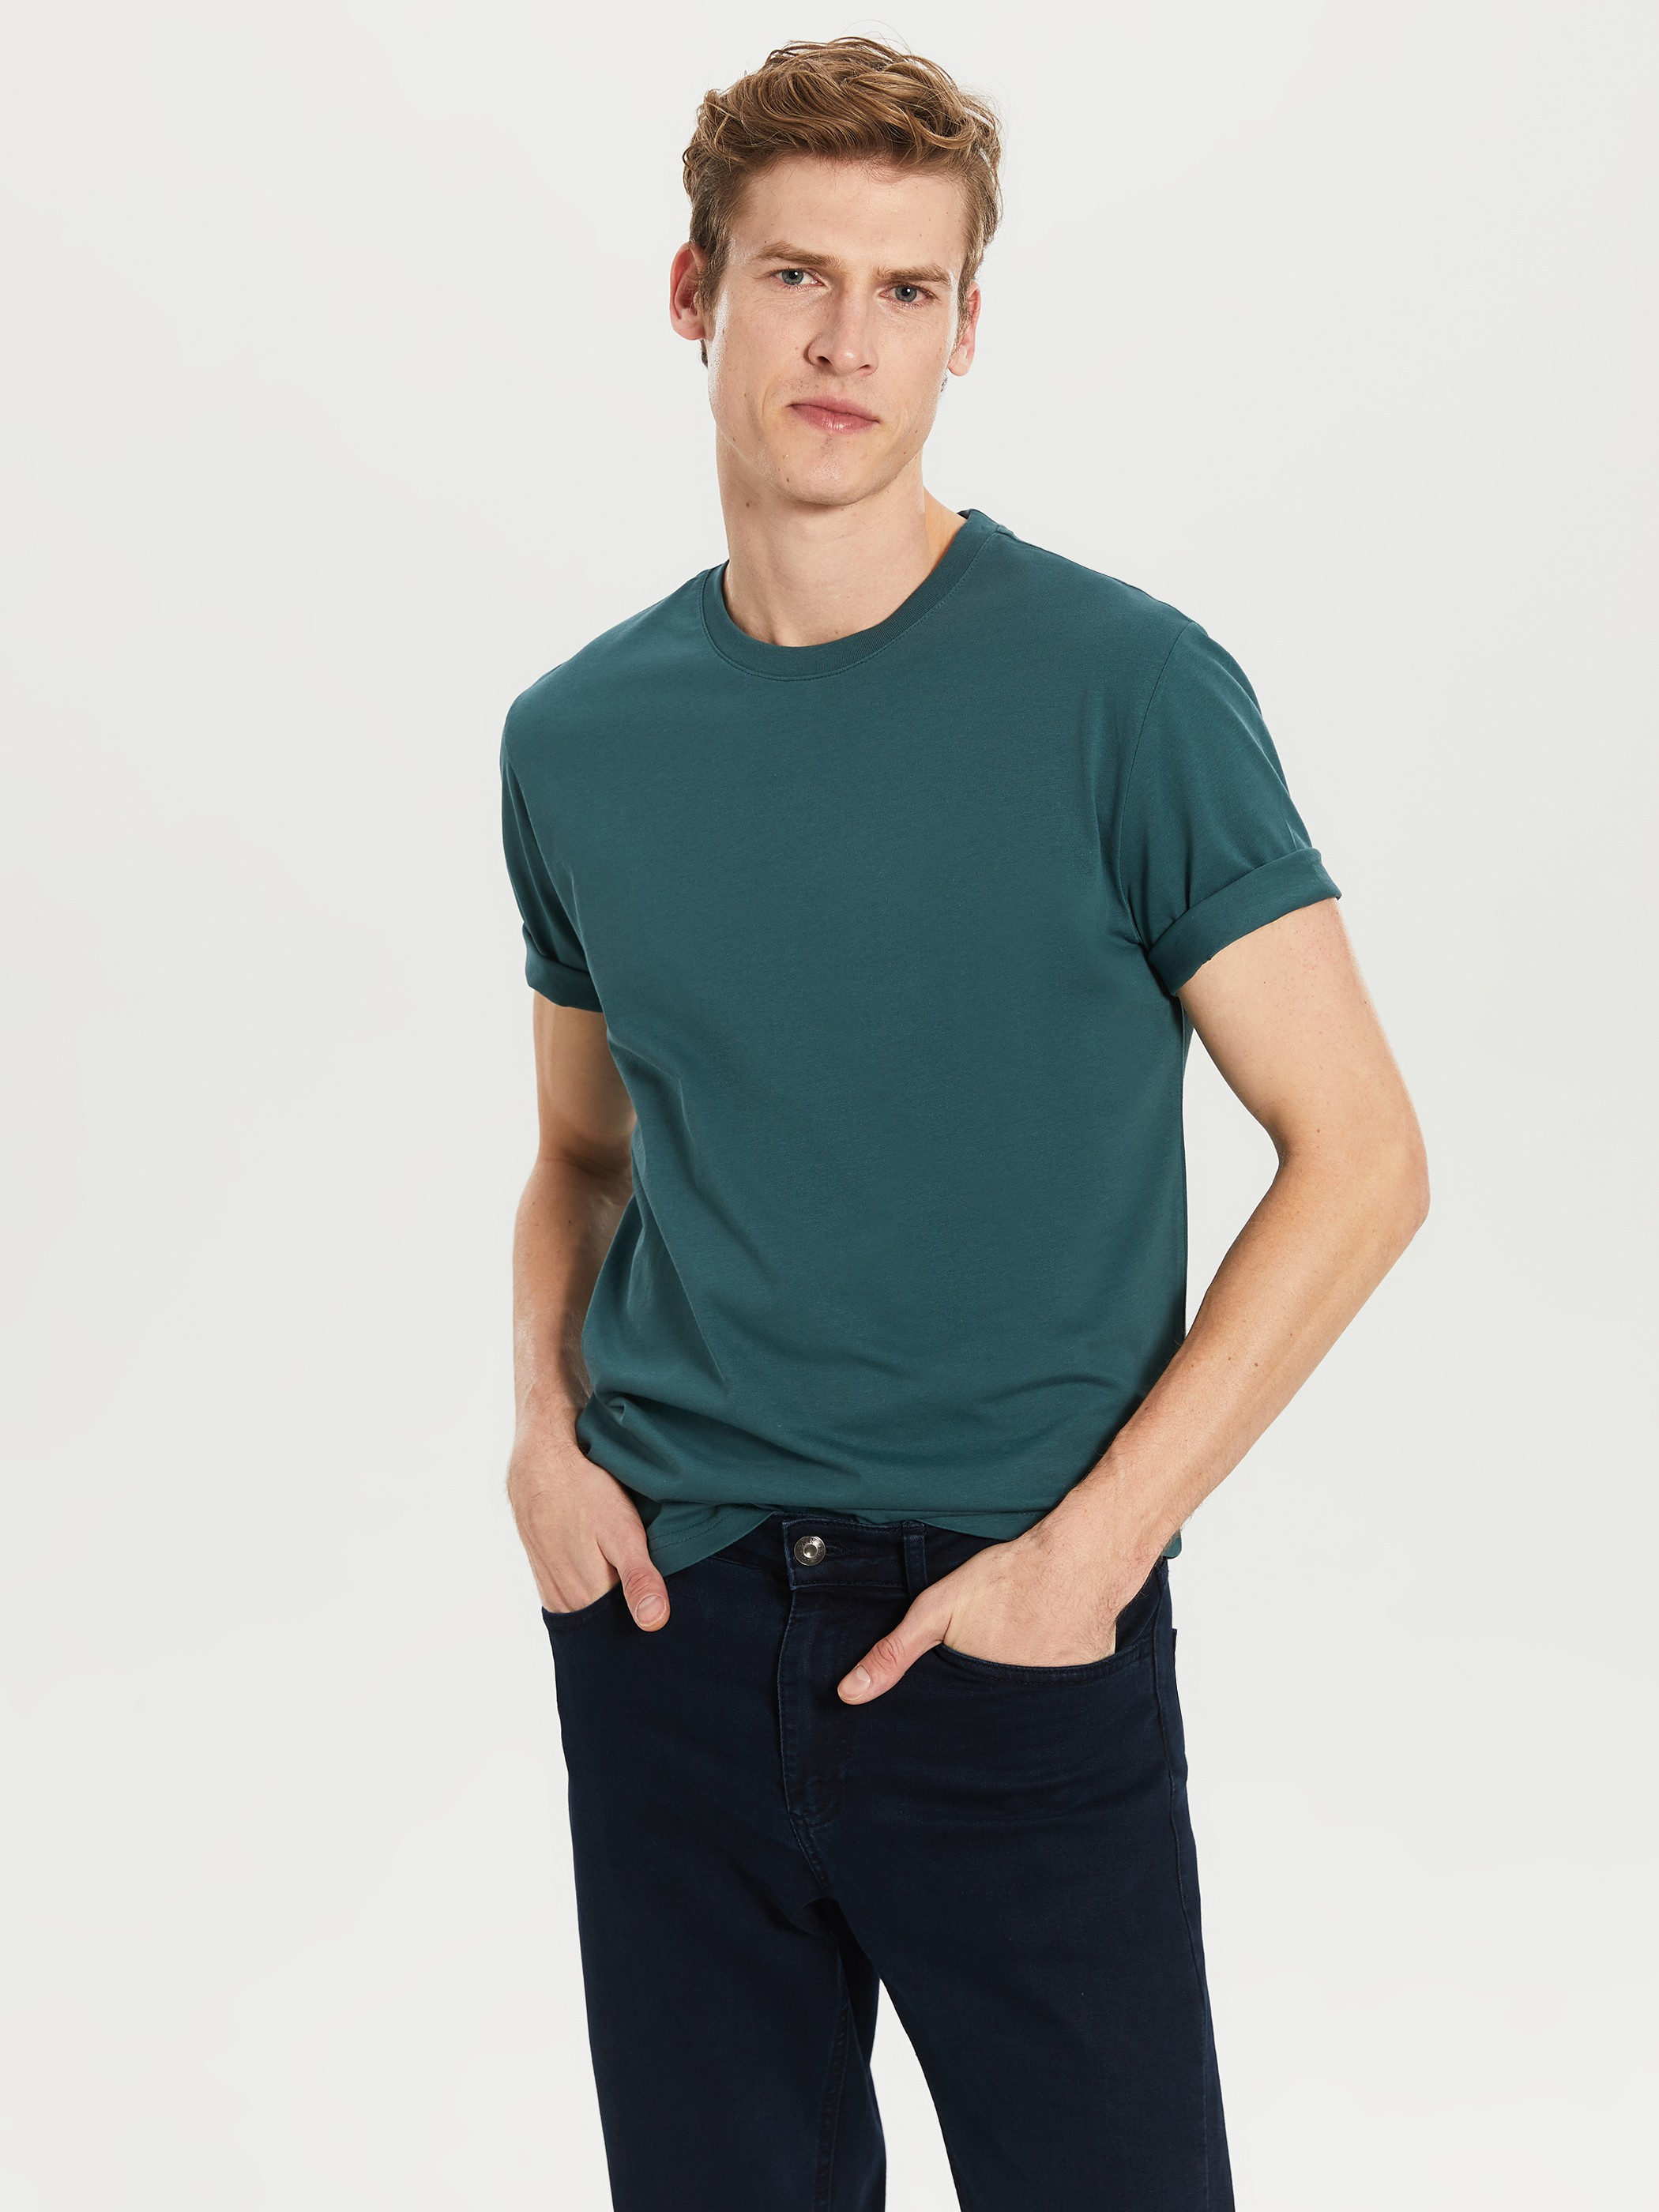 GREEN - Crew Neck Basic Combed Cotton T-Shirt - 0S1780Z8